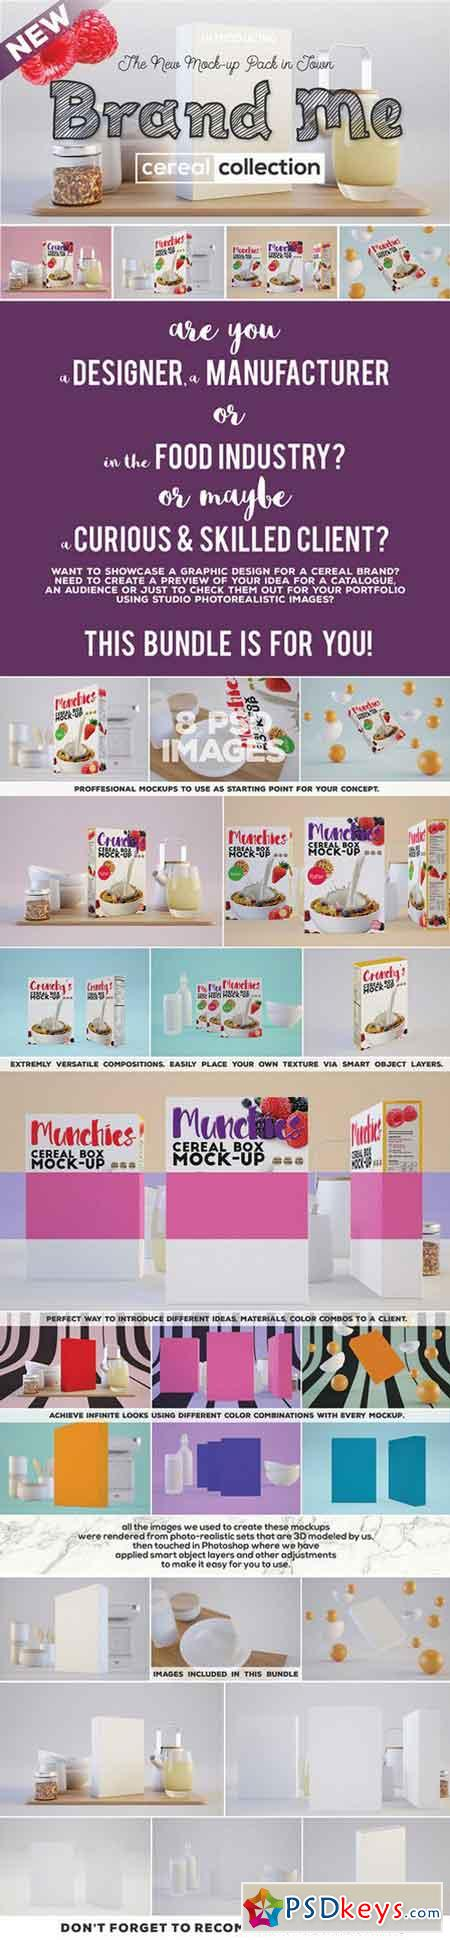 Brand Me - Cereal Mock-up Collection 709462